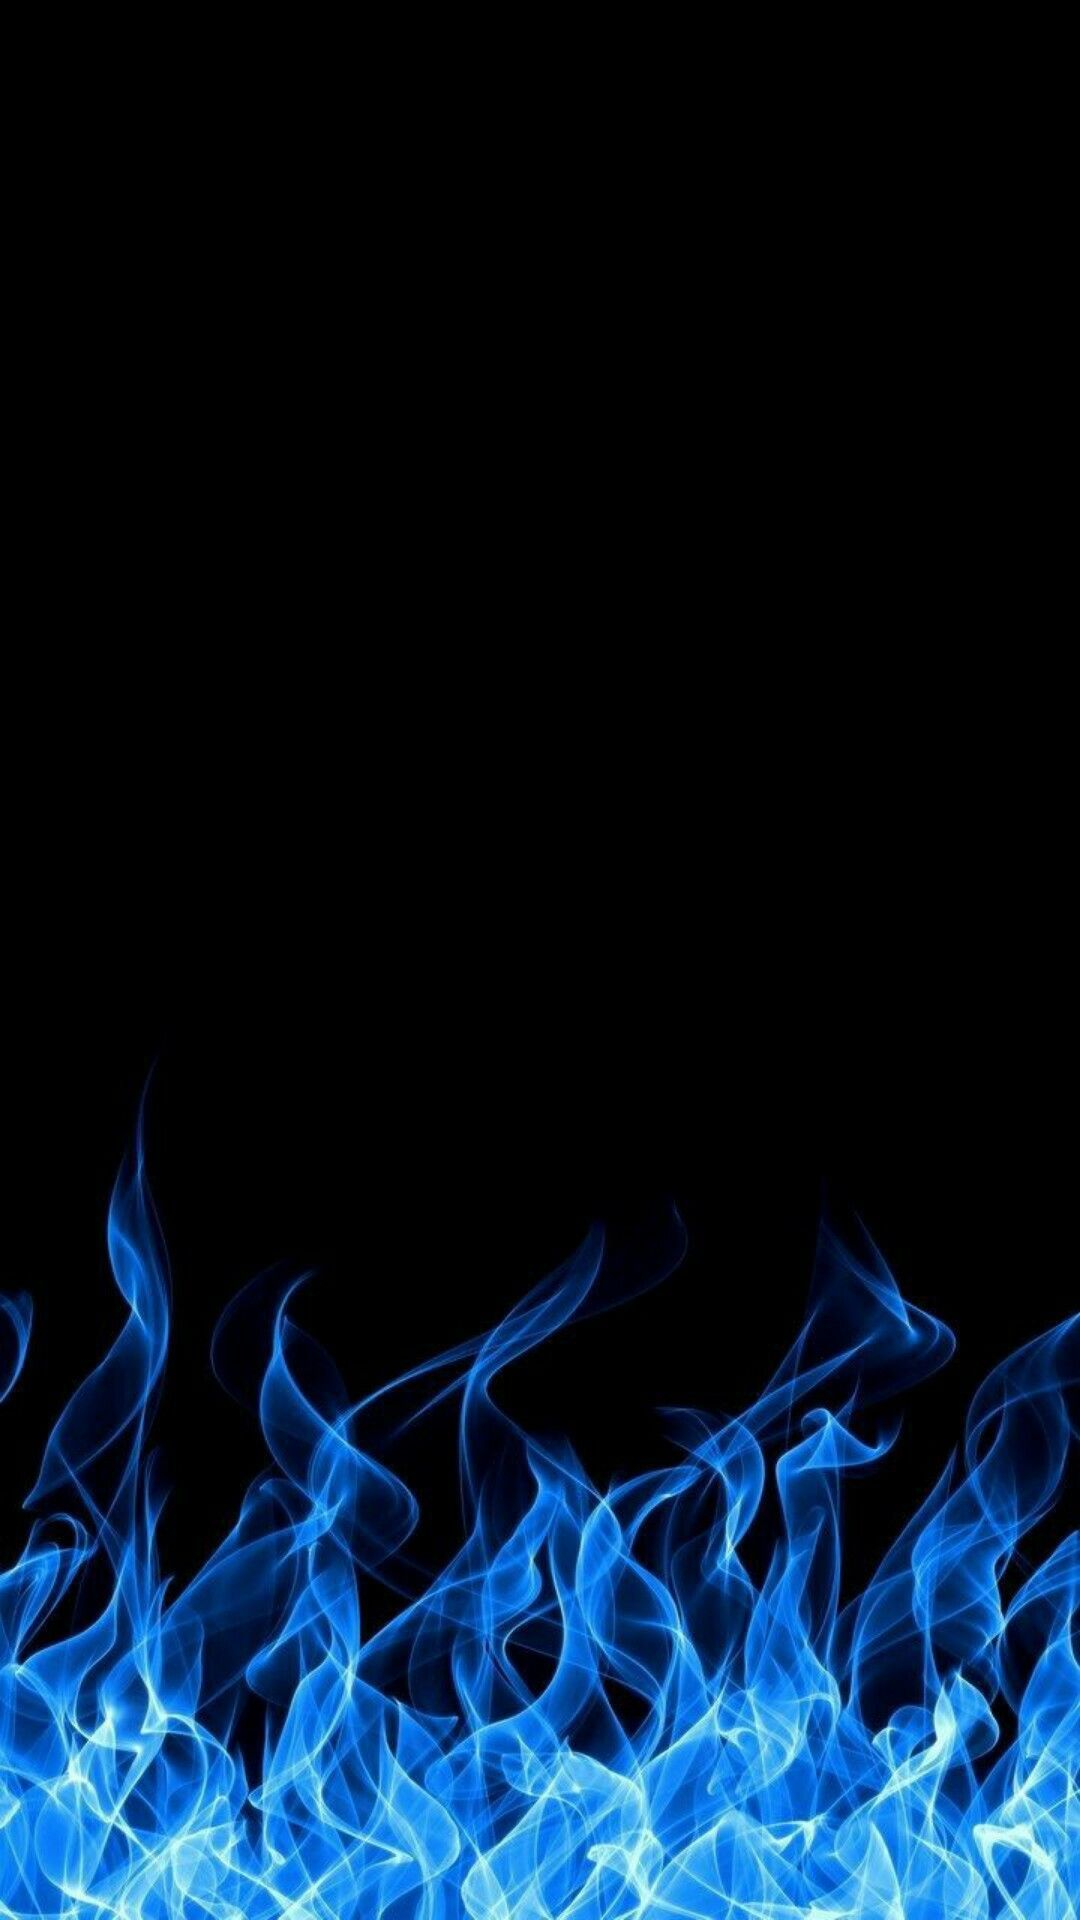 Blue Fire Background Image Best Iphone Wallpapers Backgrounds Phone Wallpapers Iphone Background Wallpaper